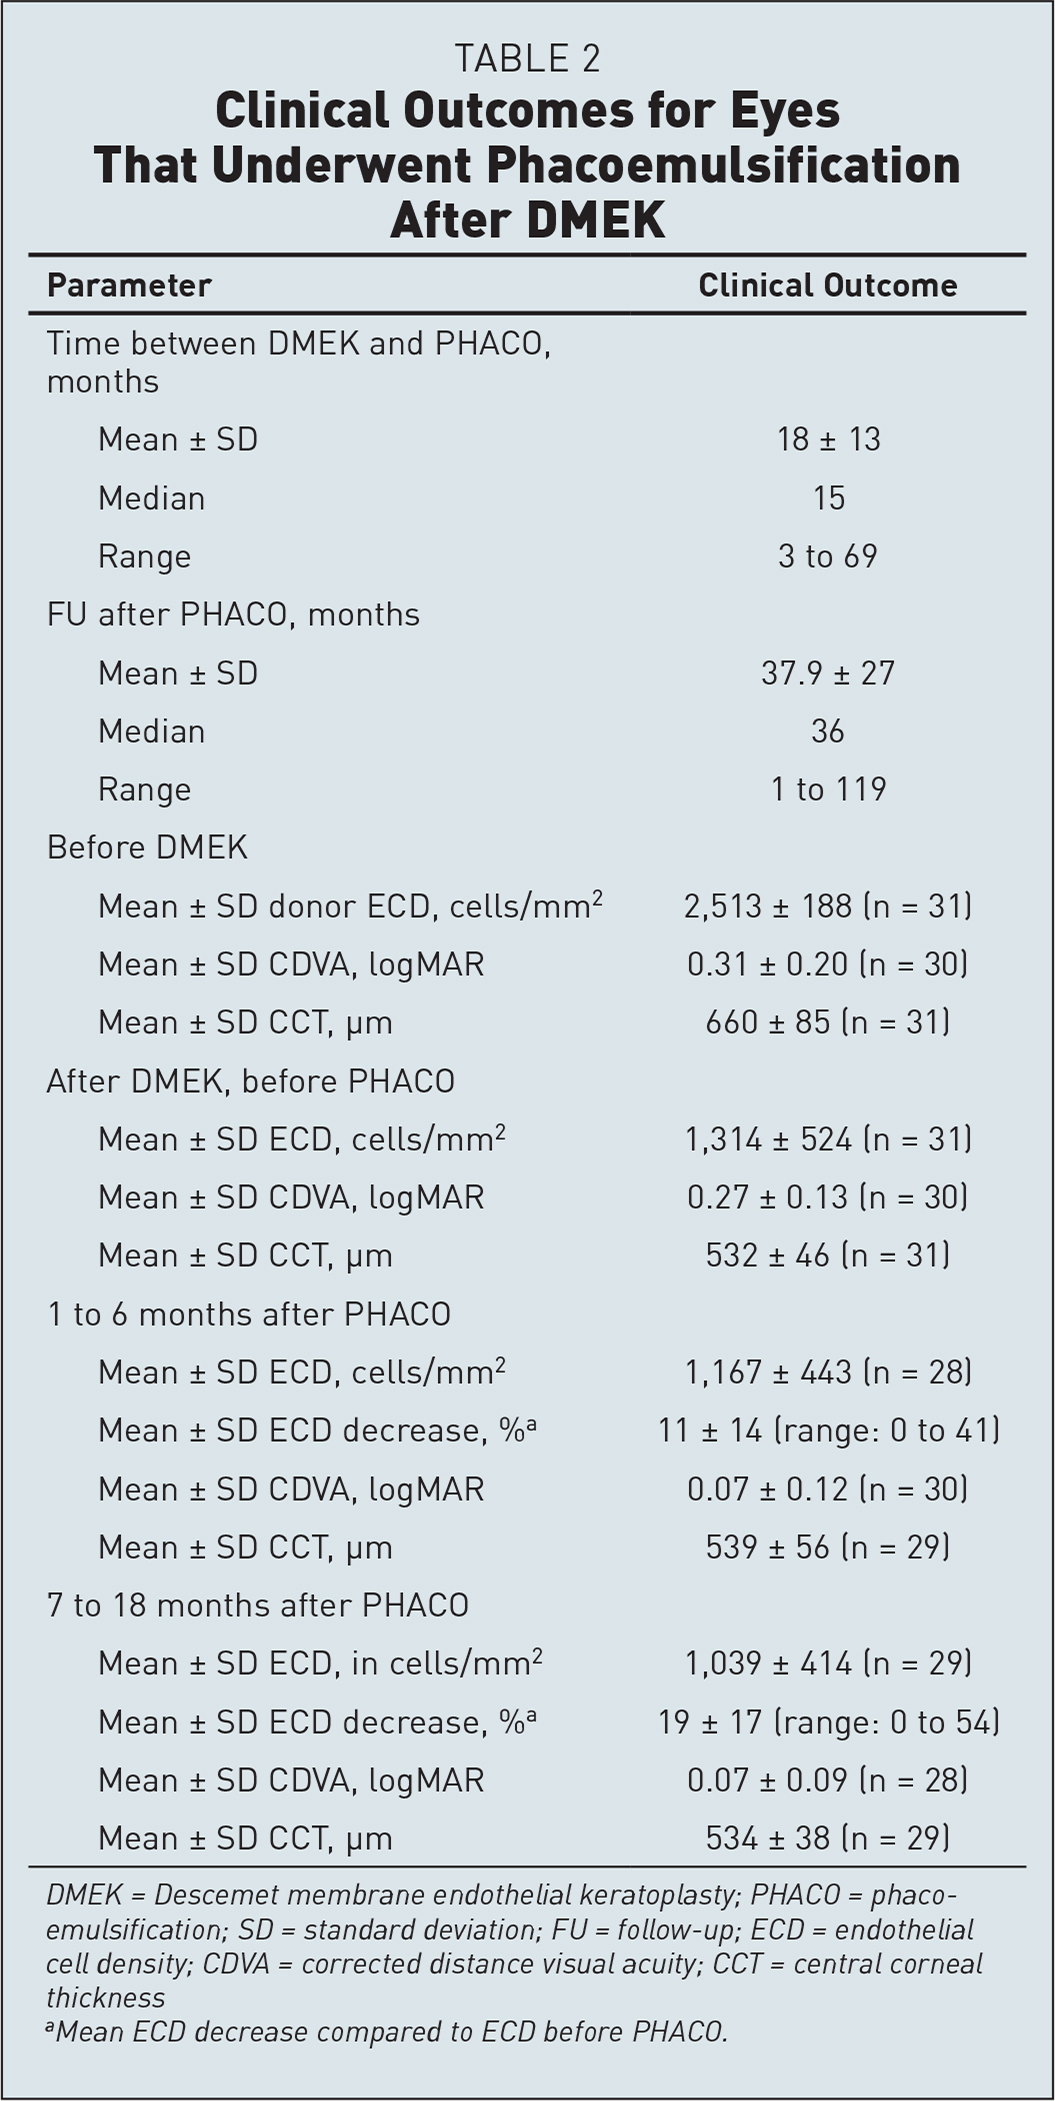 Clinical Outcomes for Eyes That Underwent Phacoemulsification After DMEK